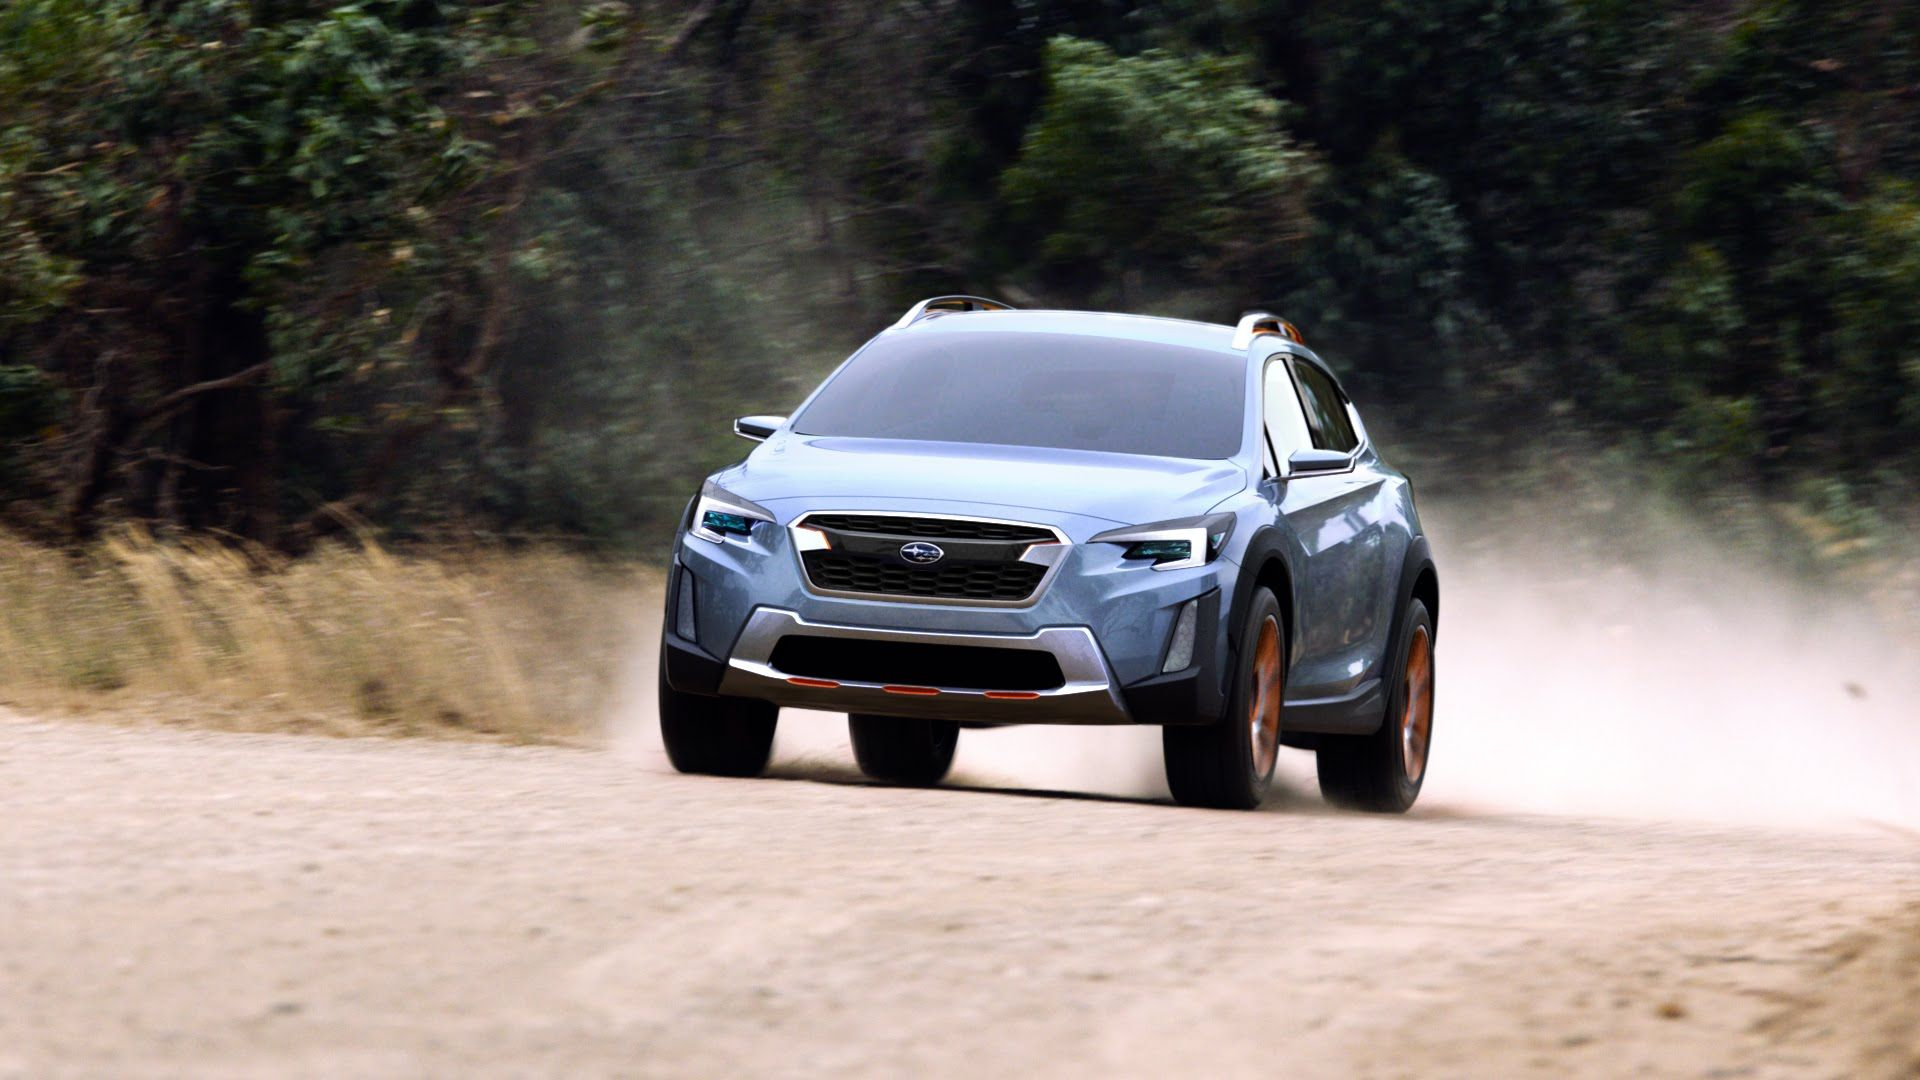 Subaru Crosstrek Perfomance And Review Httpworld Wide Web - Subaru invoice price 2018 crosstrek